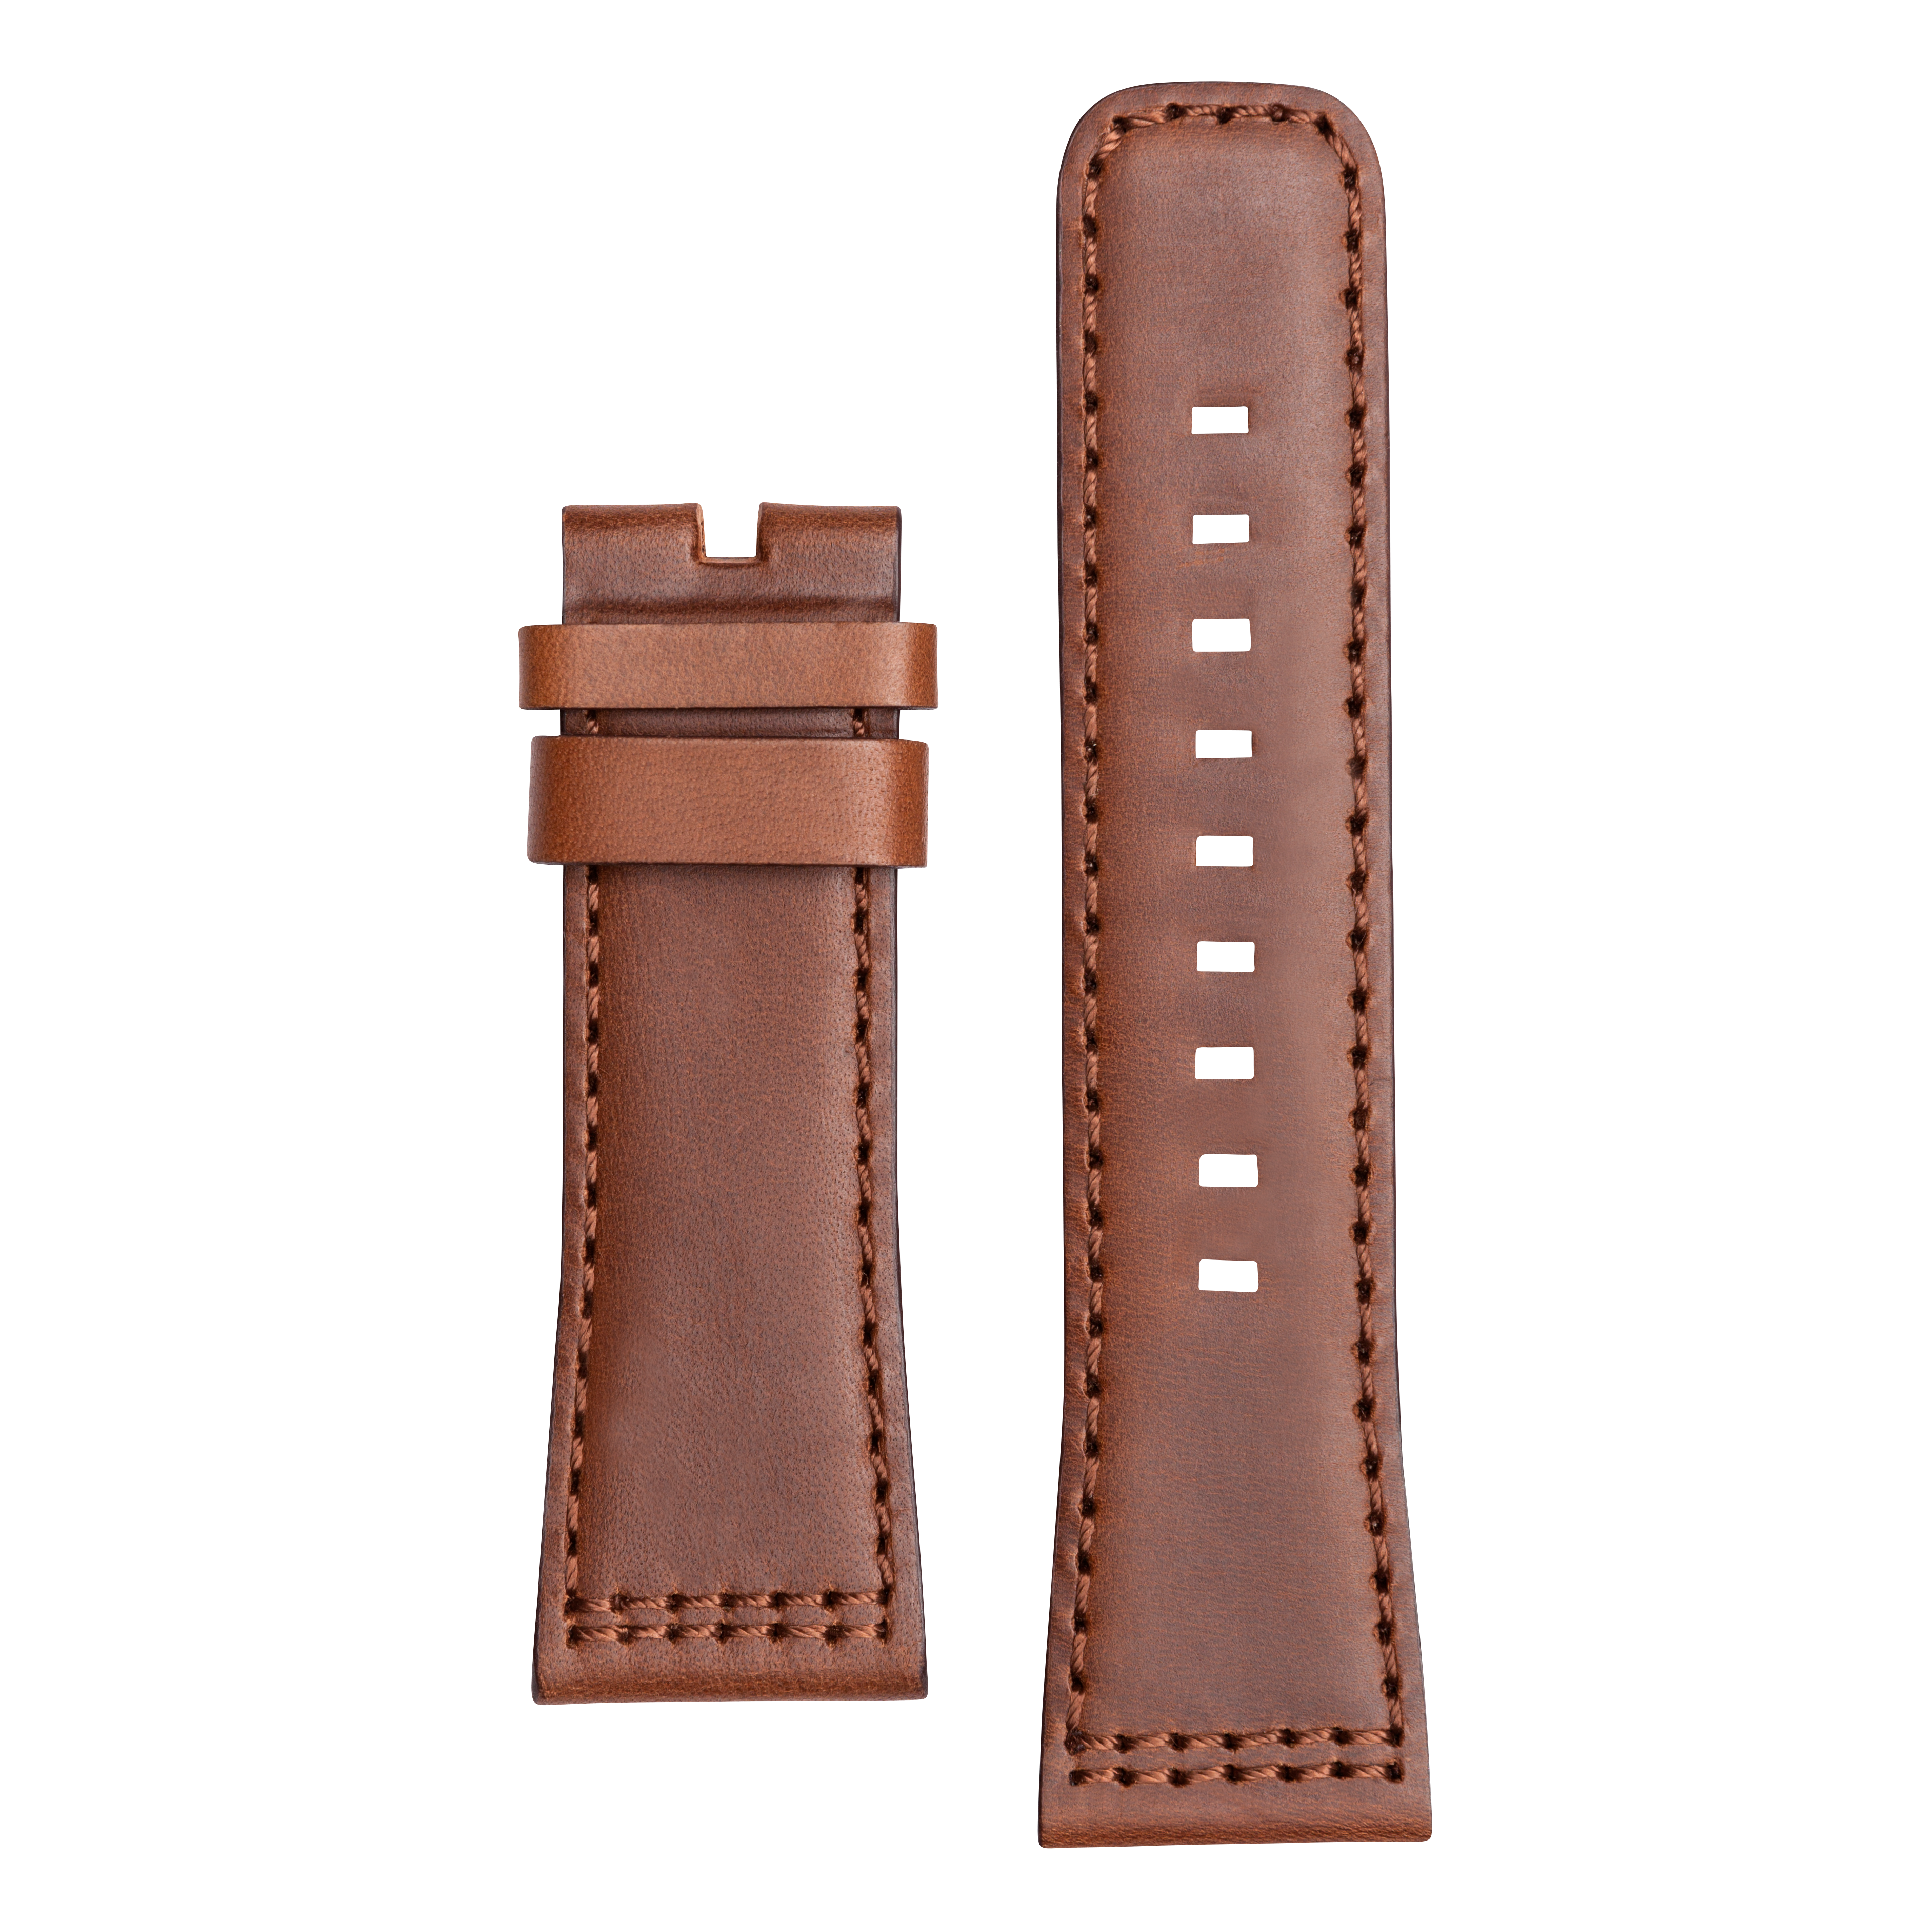 Leather strap XS brown, brown stitching